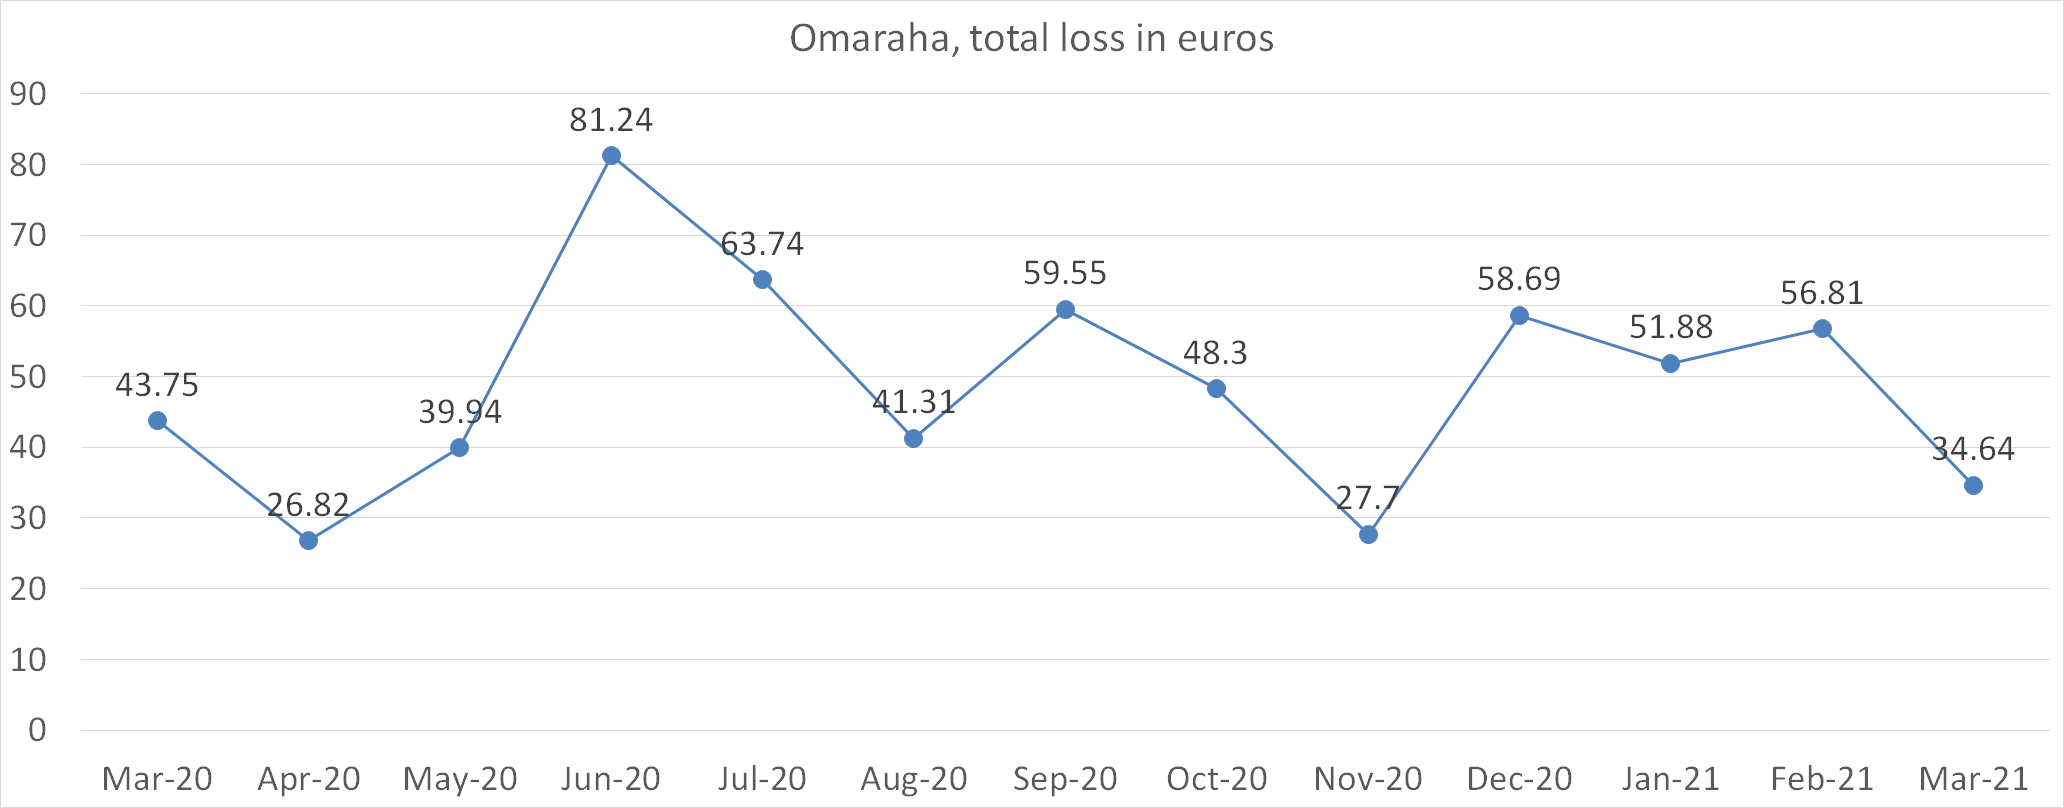 Omaraha, total loss in euros march 2021